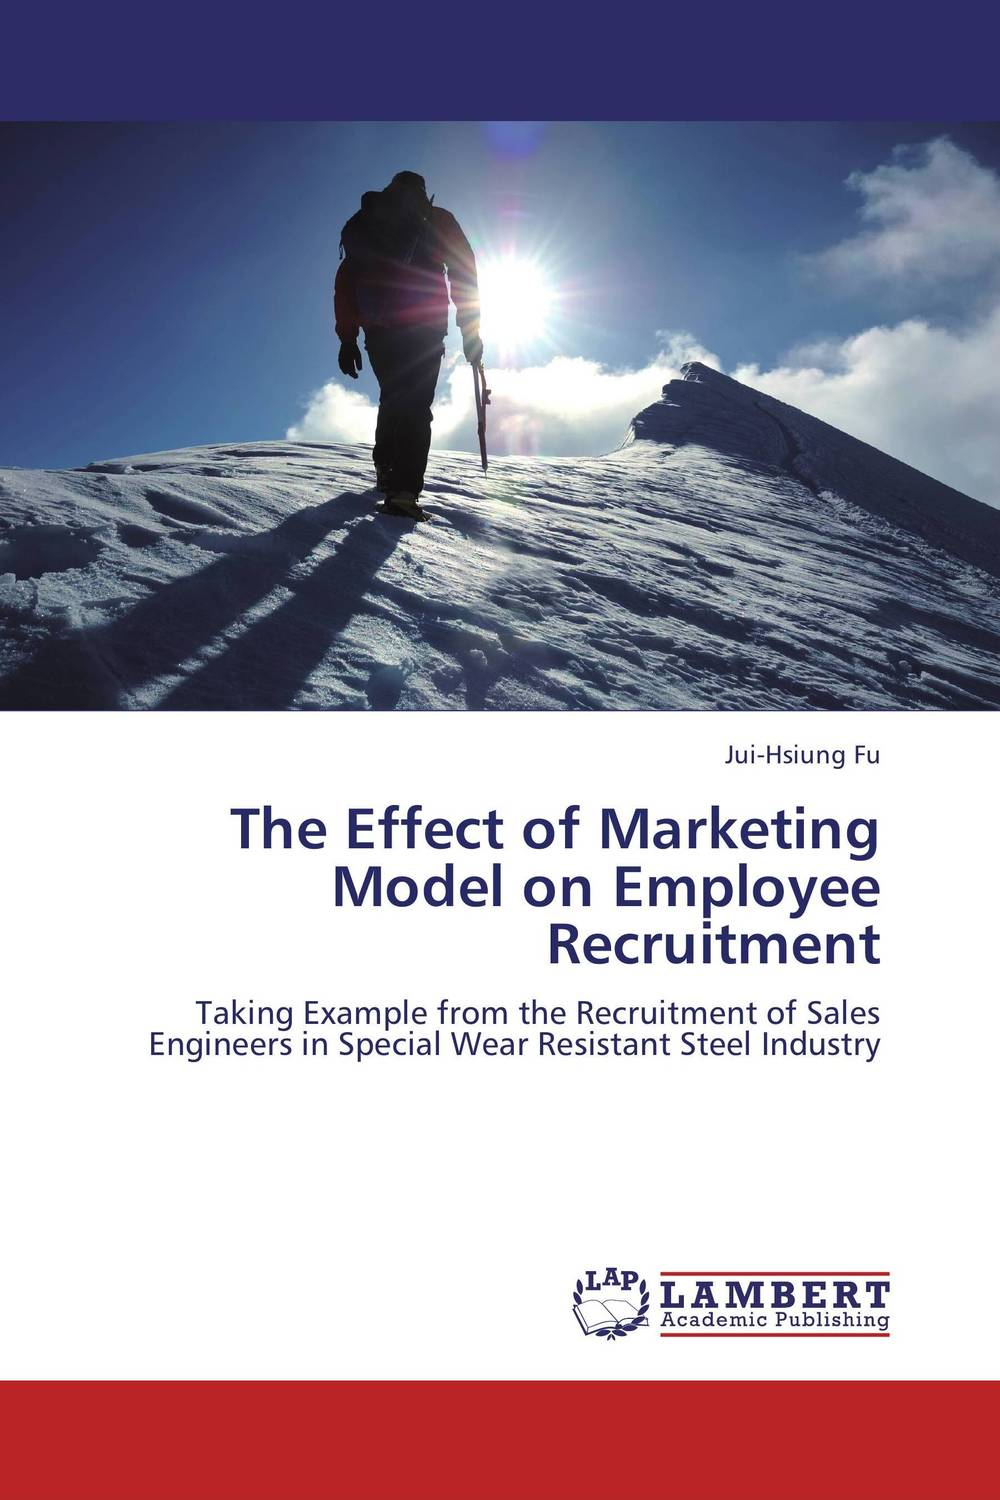 The Effect of Marketing Model on Employee Recruitment psychiatric disorders in postpartum period